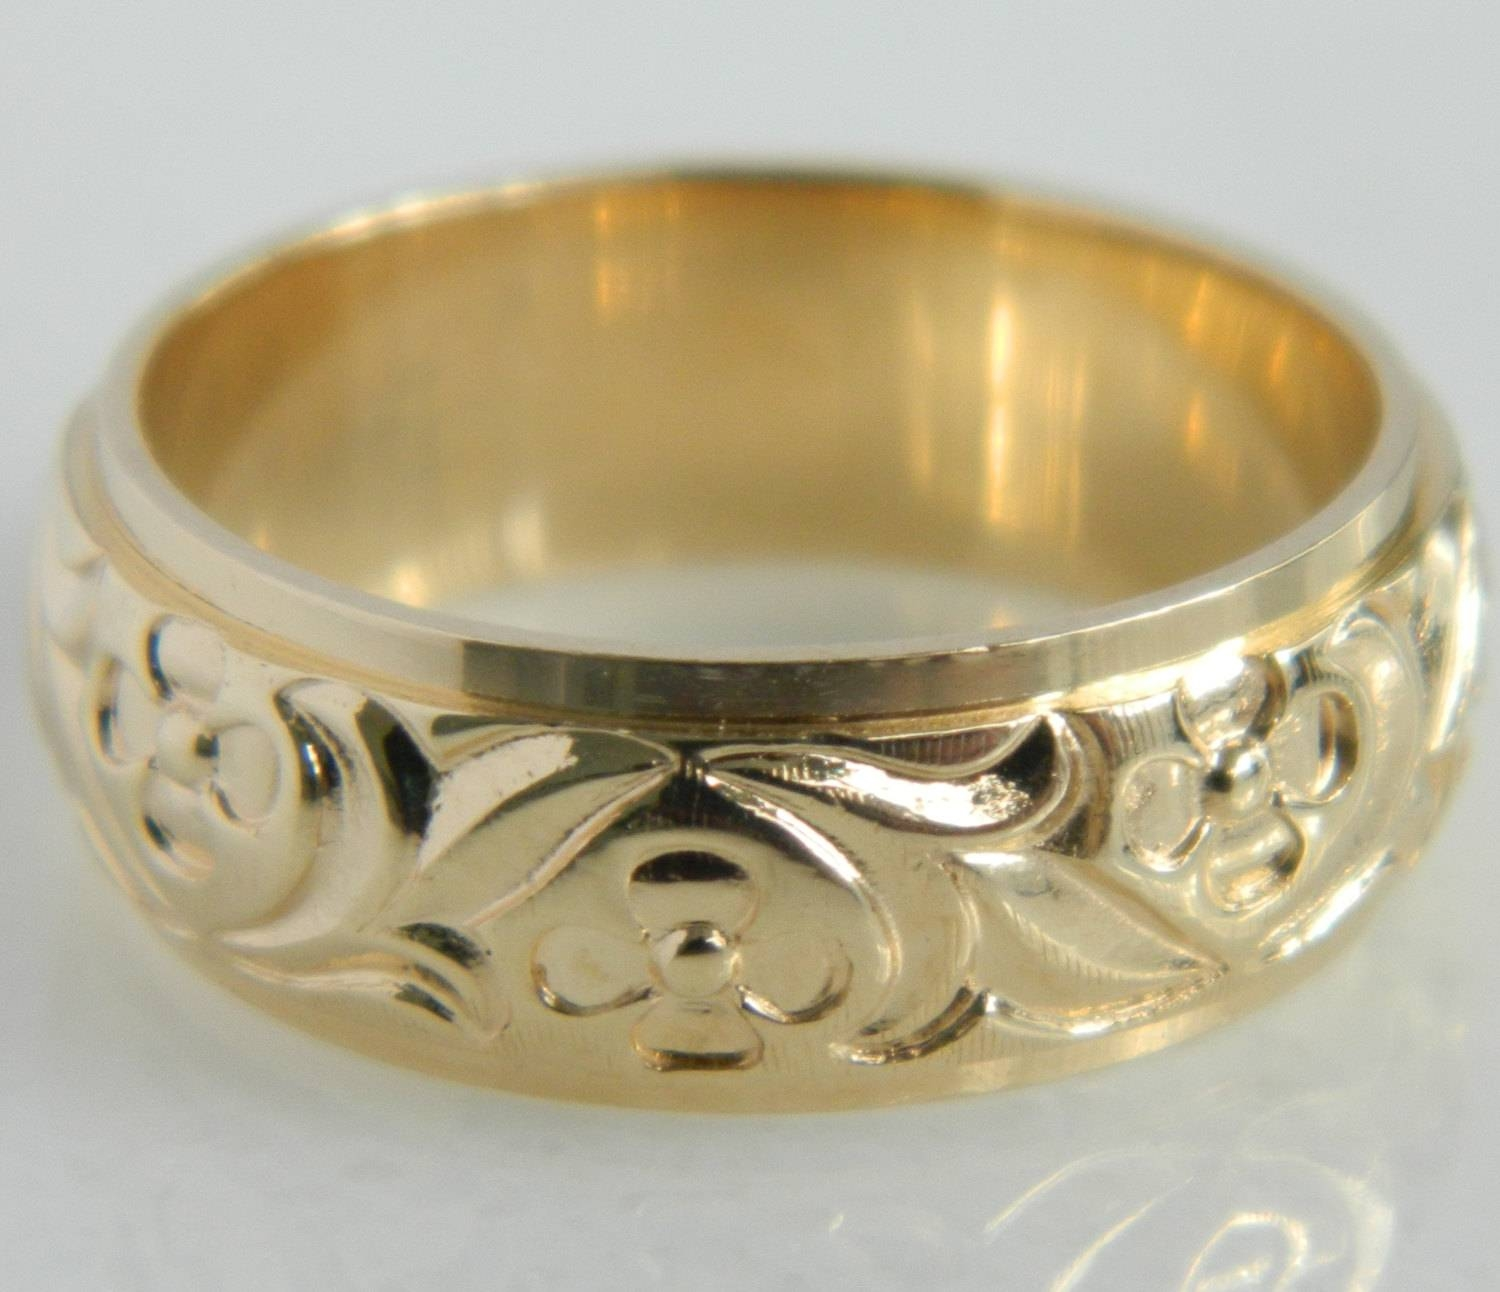 Vintage 14K Gold Floral Art Carved Wedding Band Pertaining To Carved Wedding Rings (View 12 of 15)